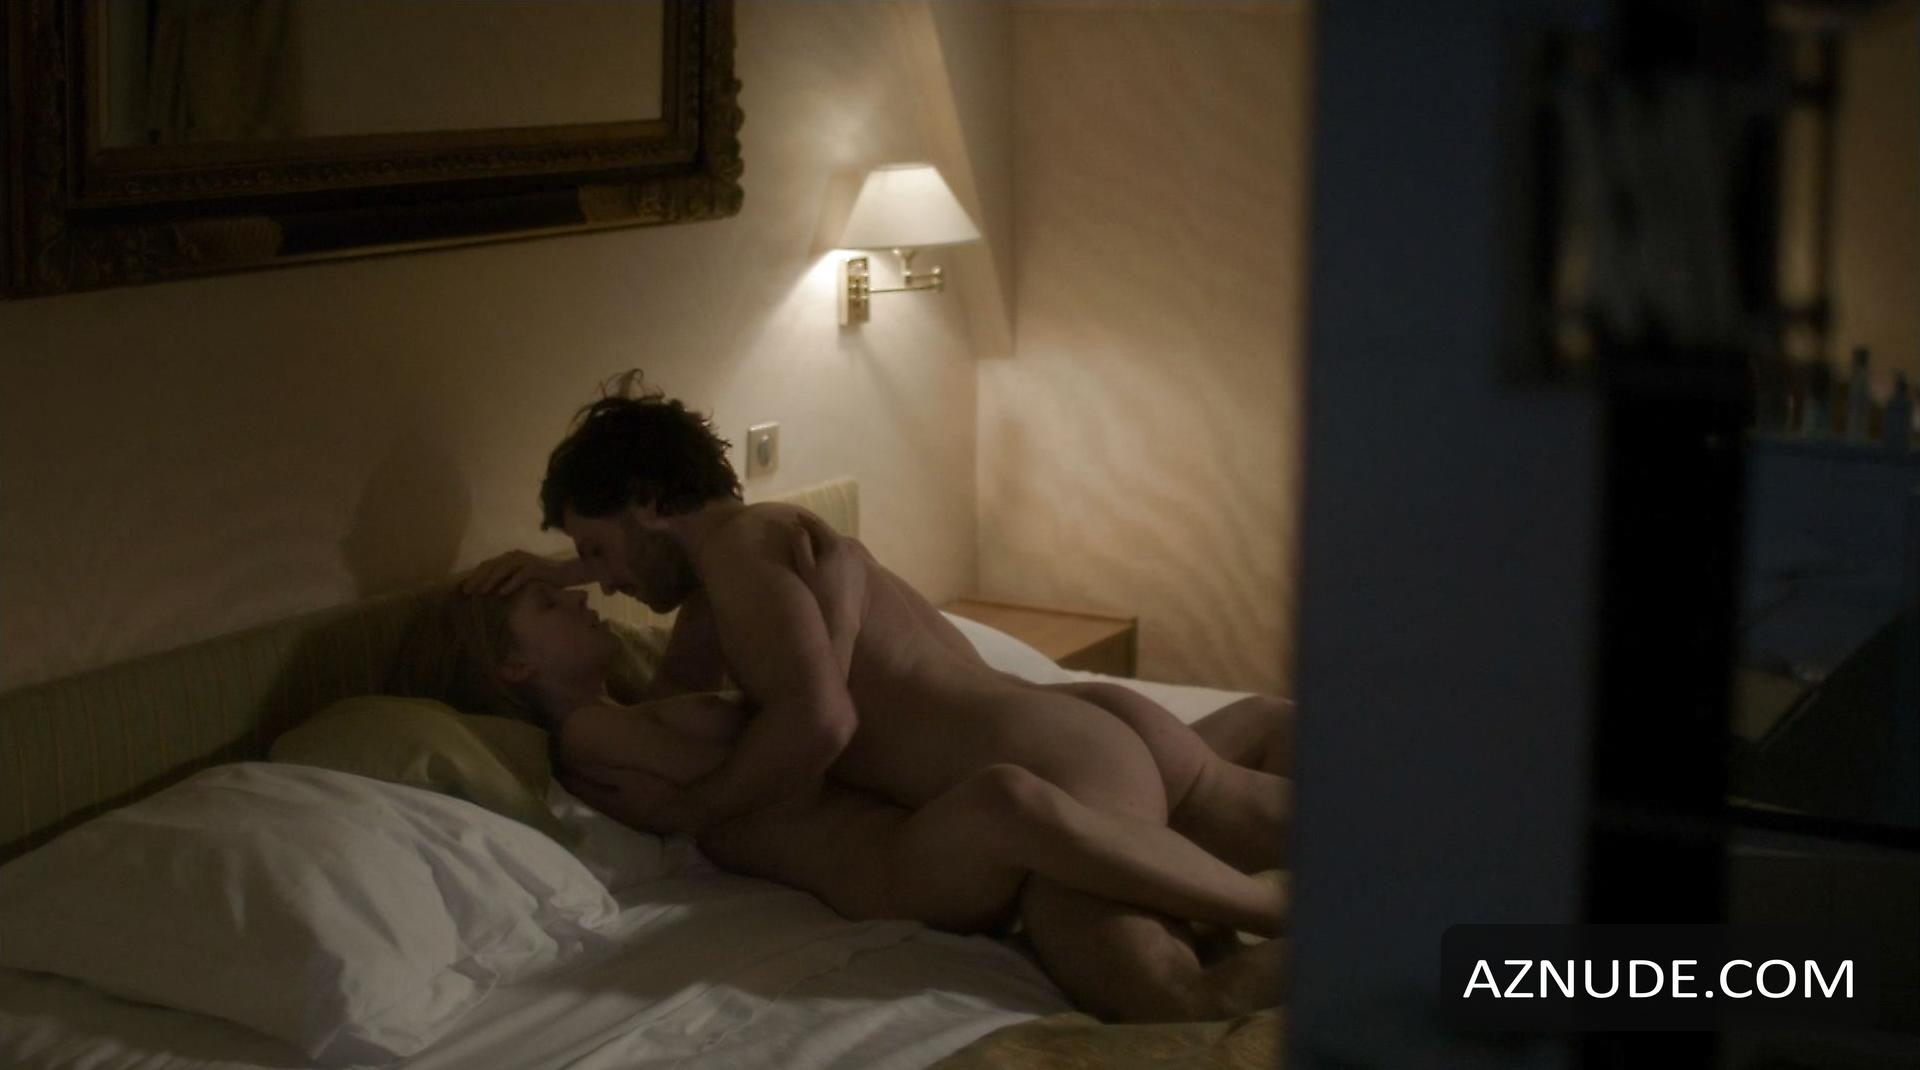 Rooney mara nude the girl with the dragon tattoo 2011 - 1 part 2